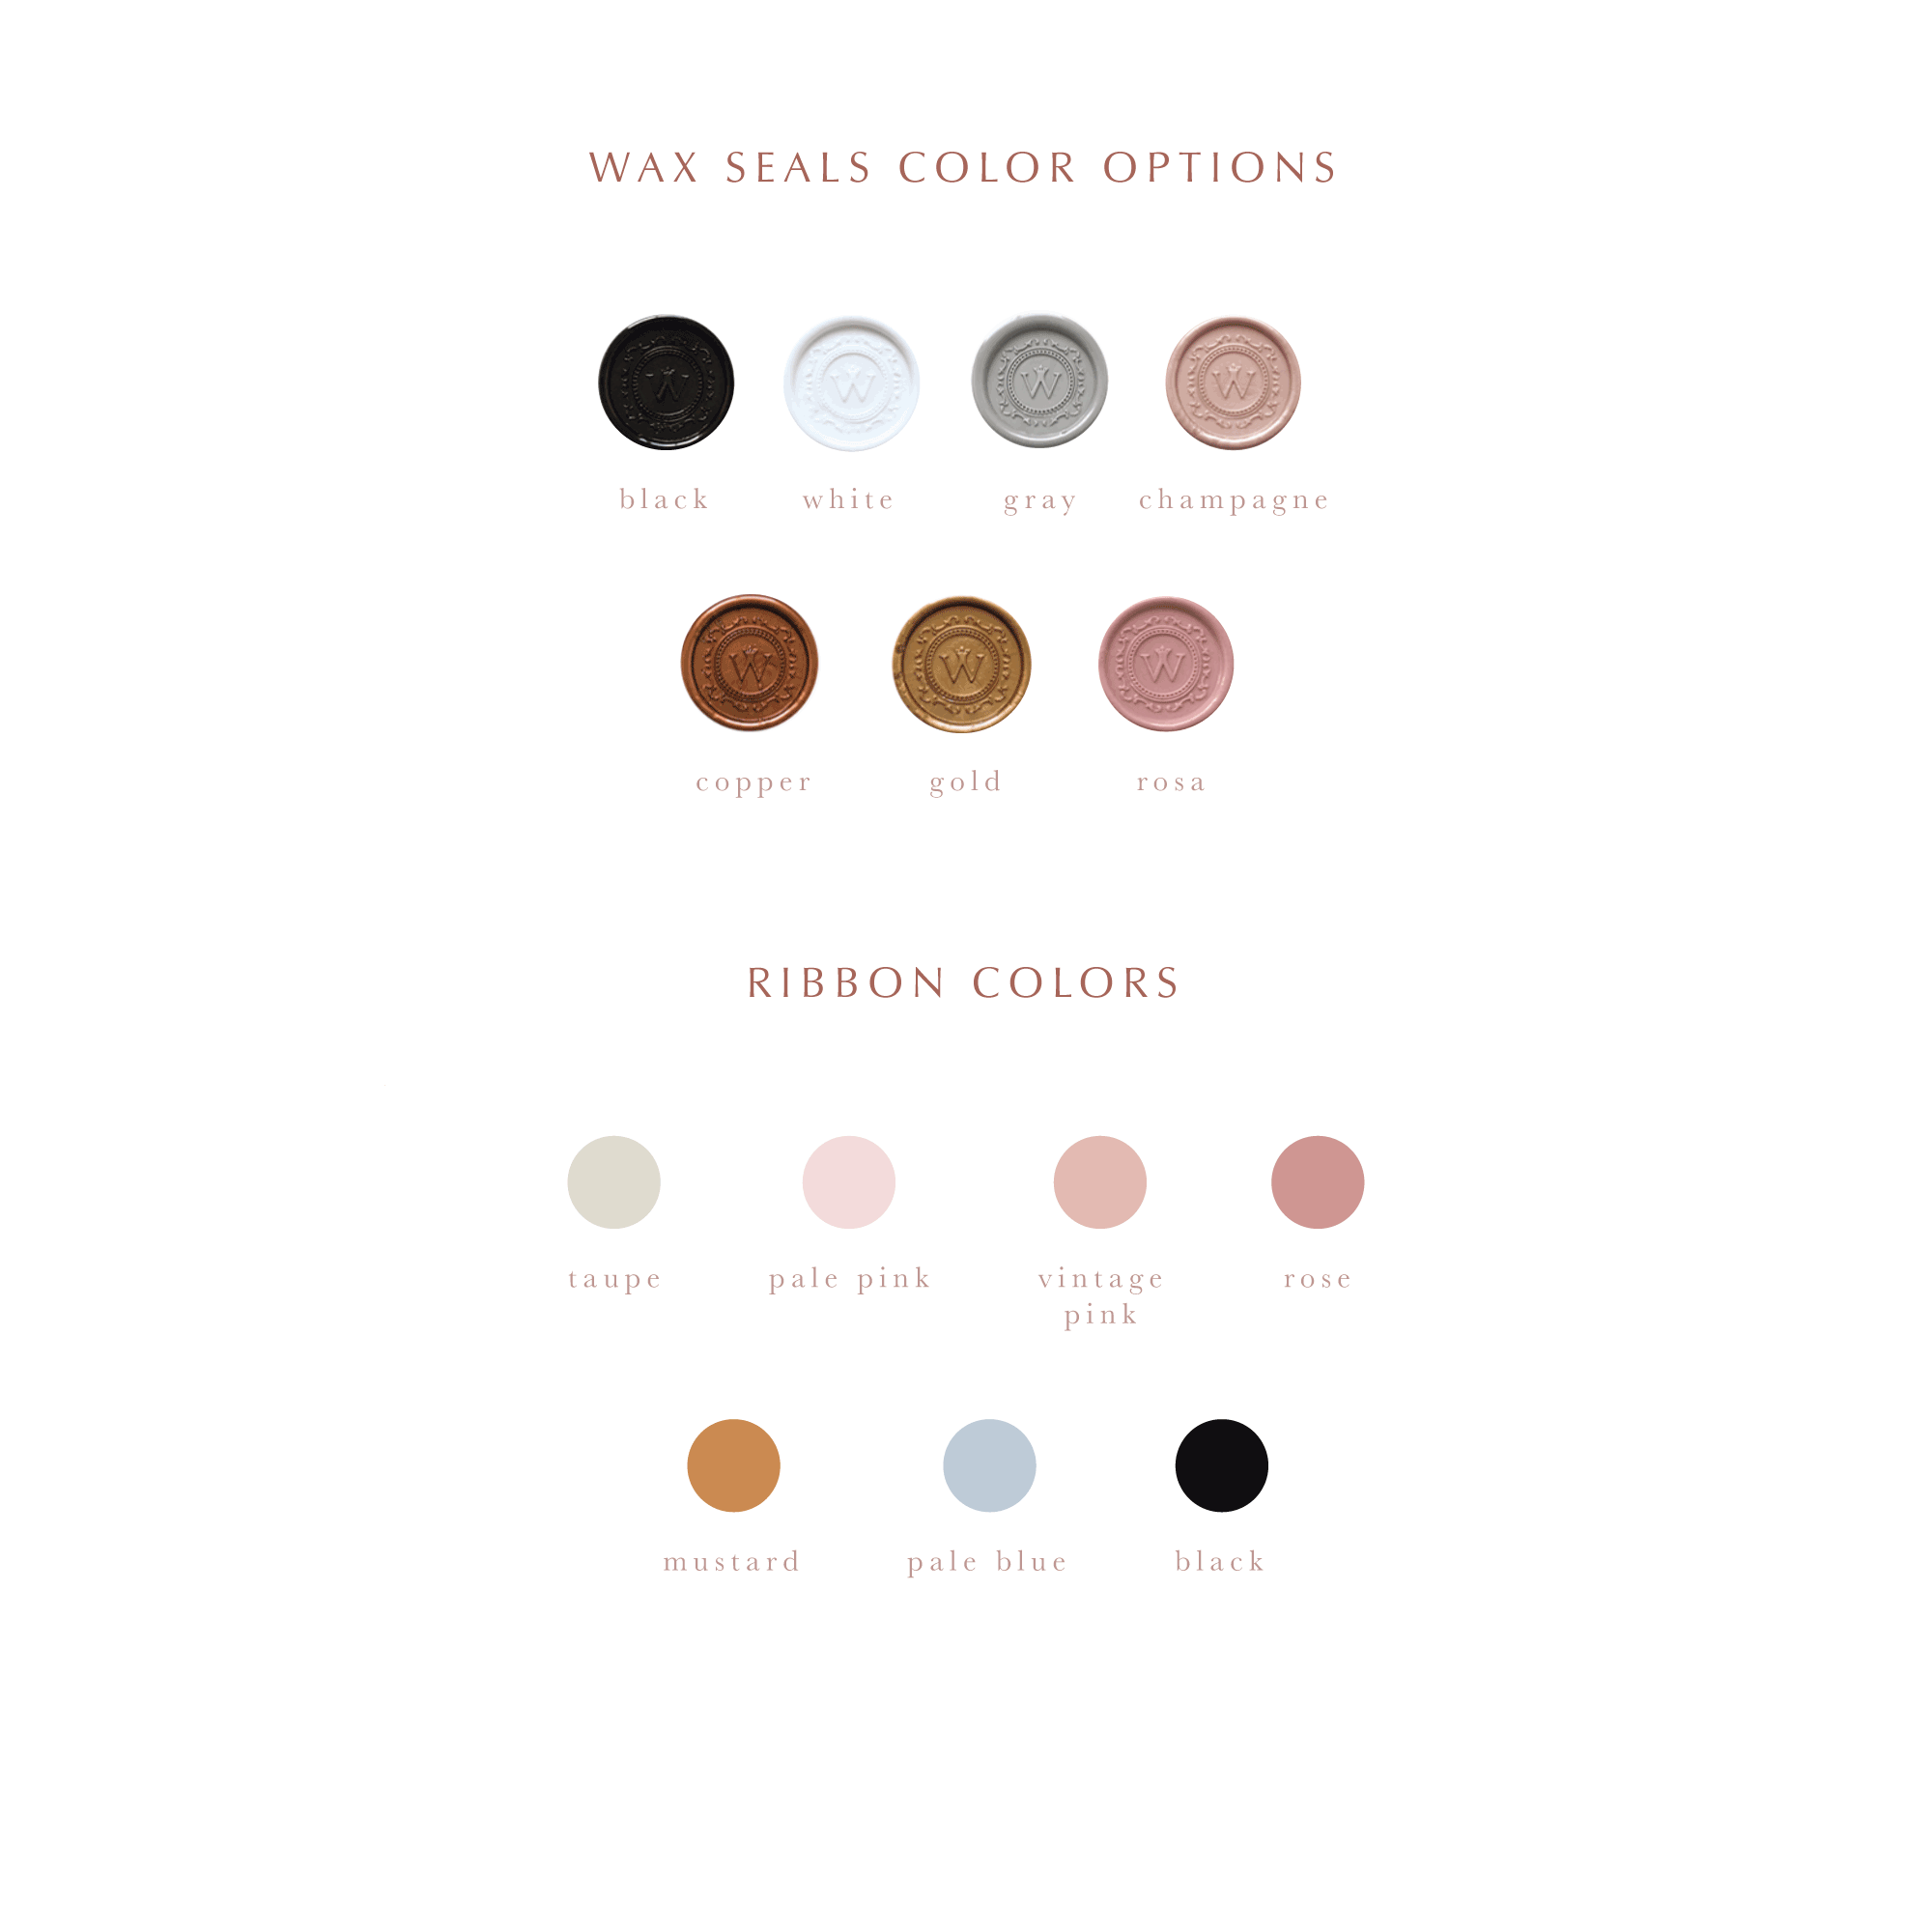 Waxseals_Ribbon_Options.png